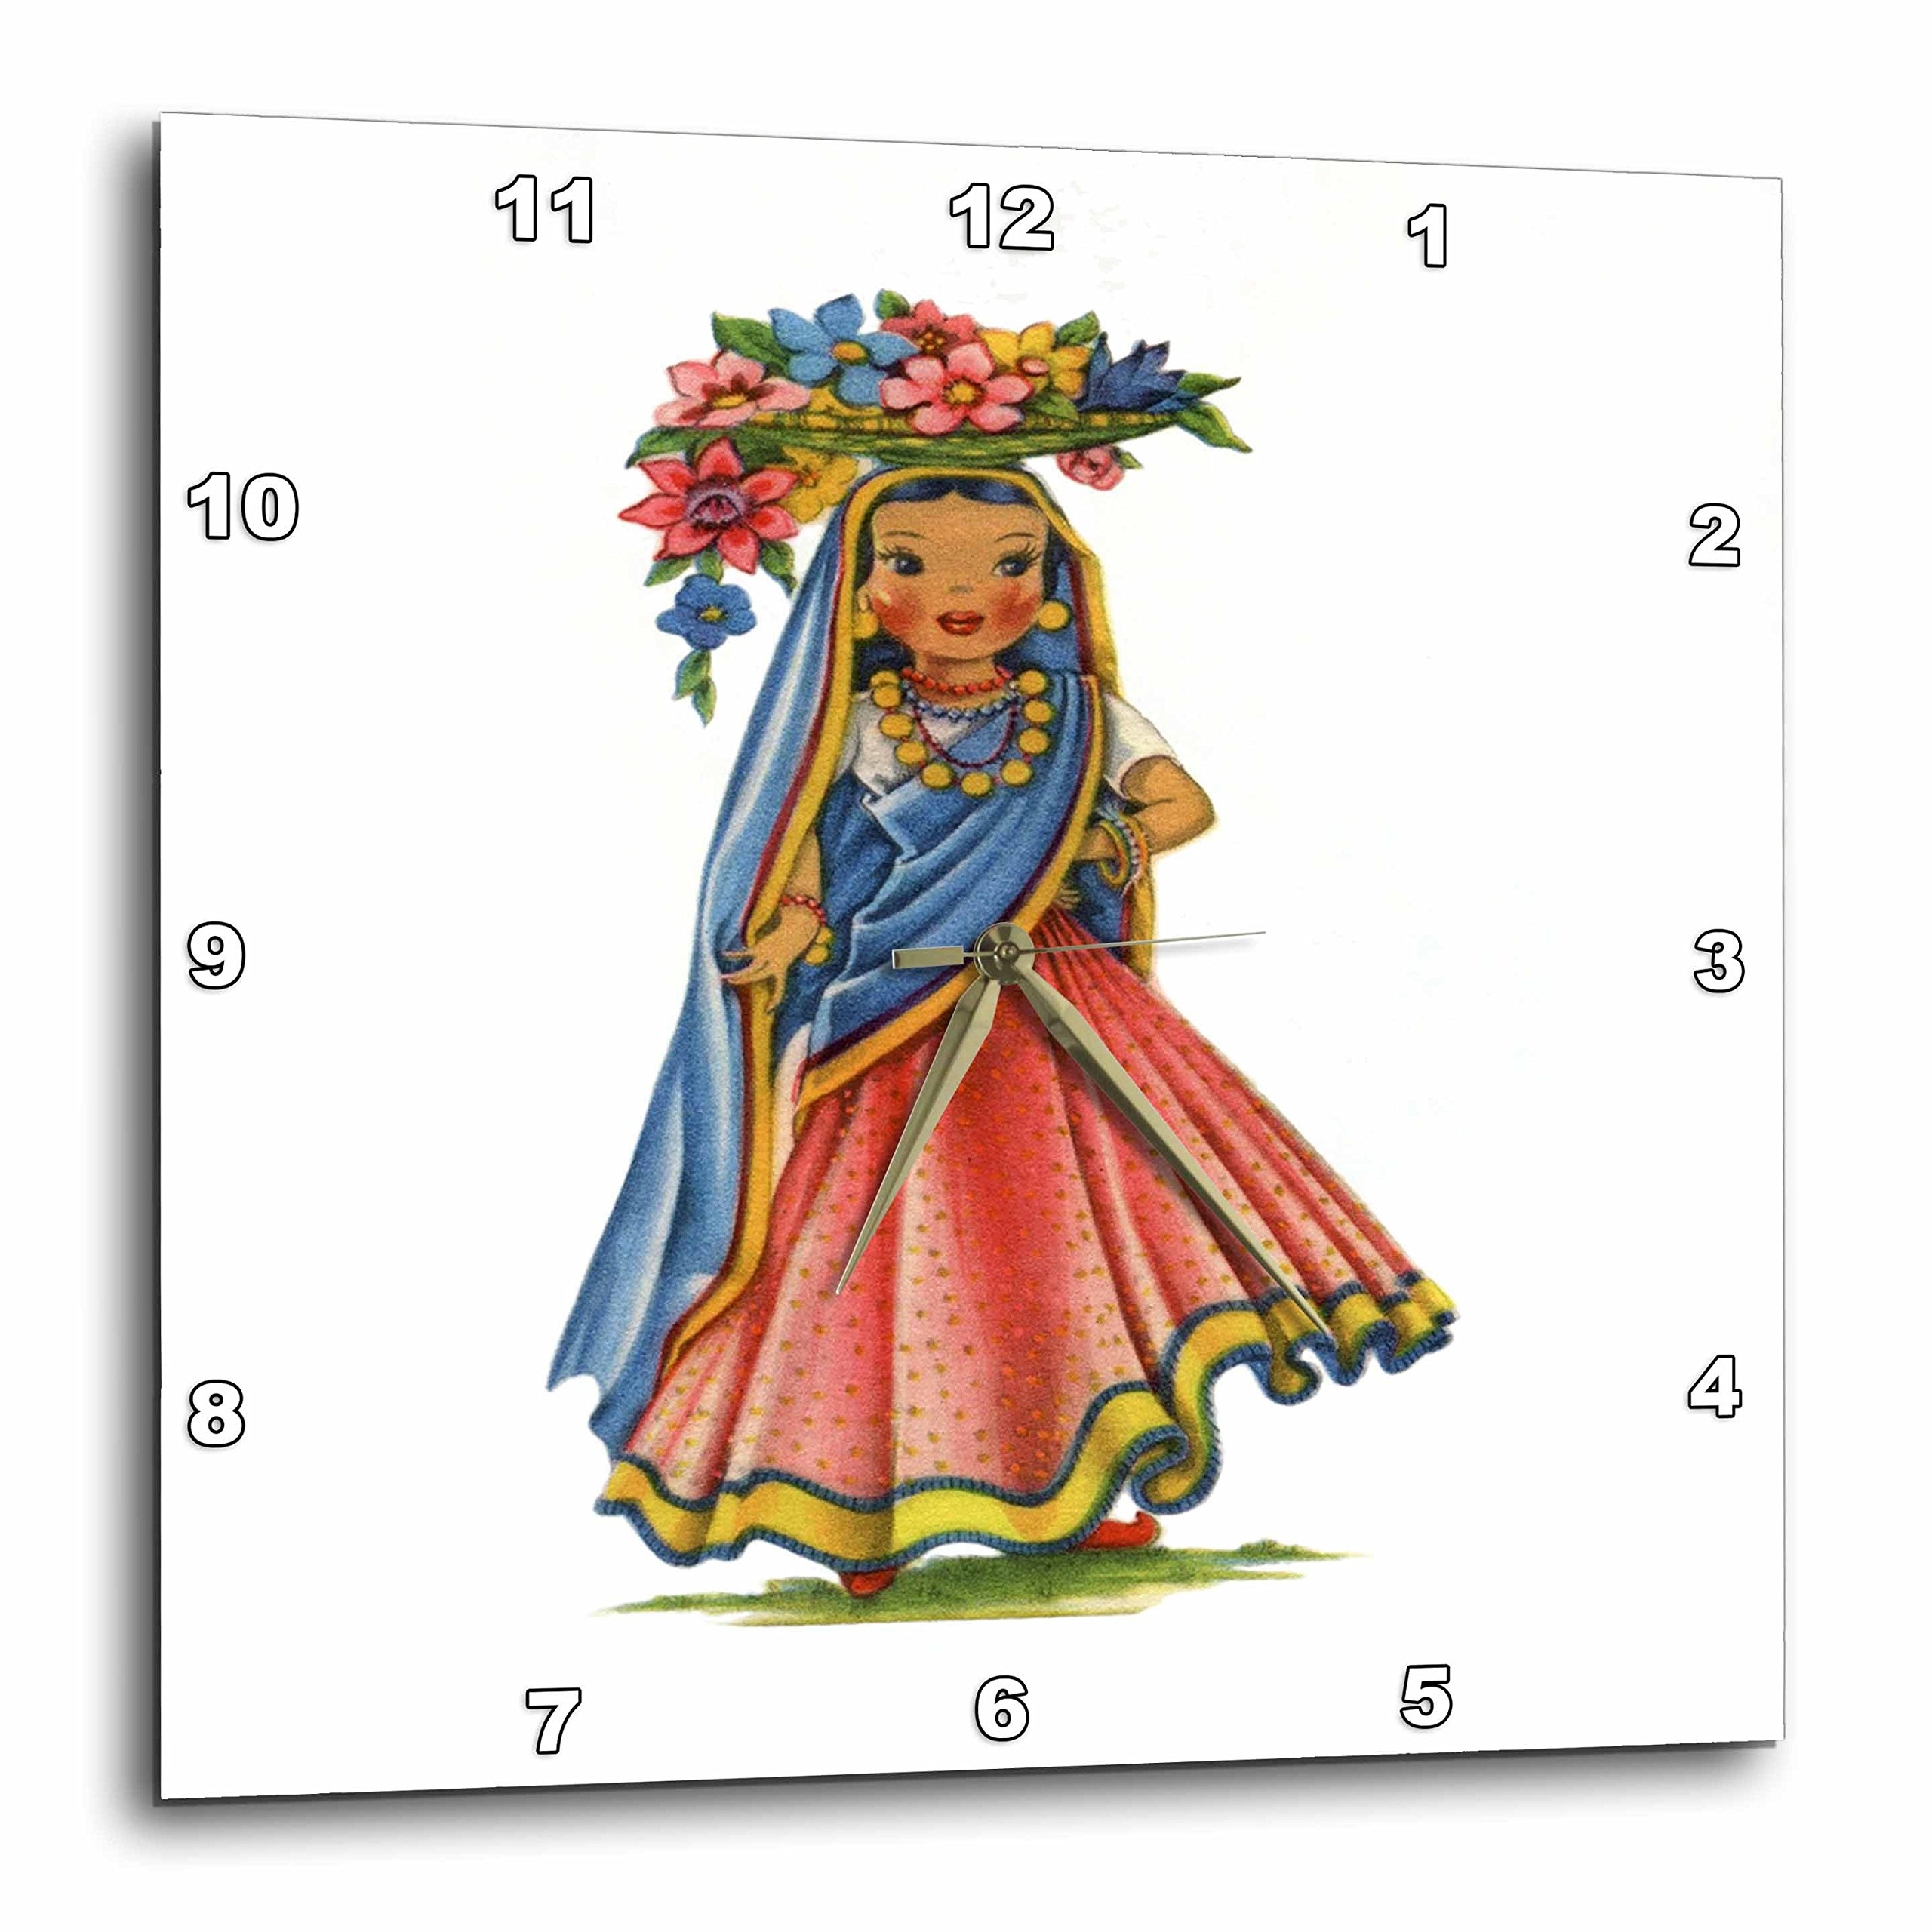 3dRose Print of Retro Doll From India - Wall Clock, 10 by 10-Inch (dpp_204605_1)